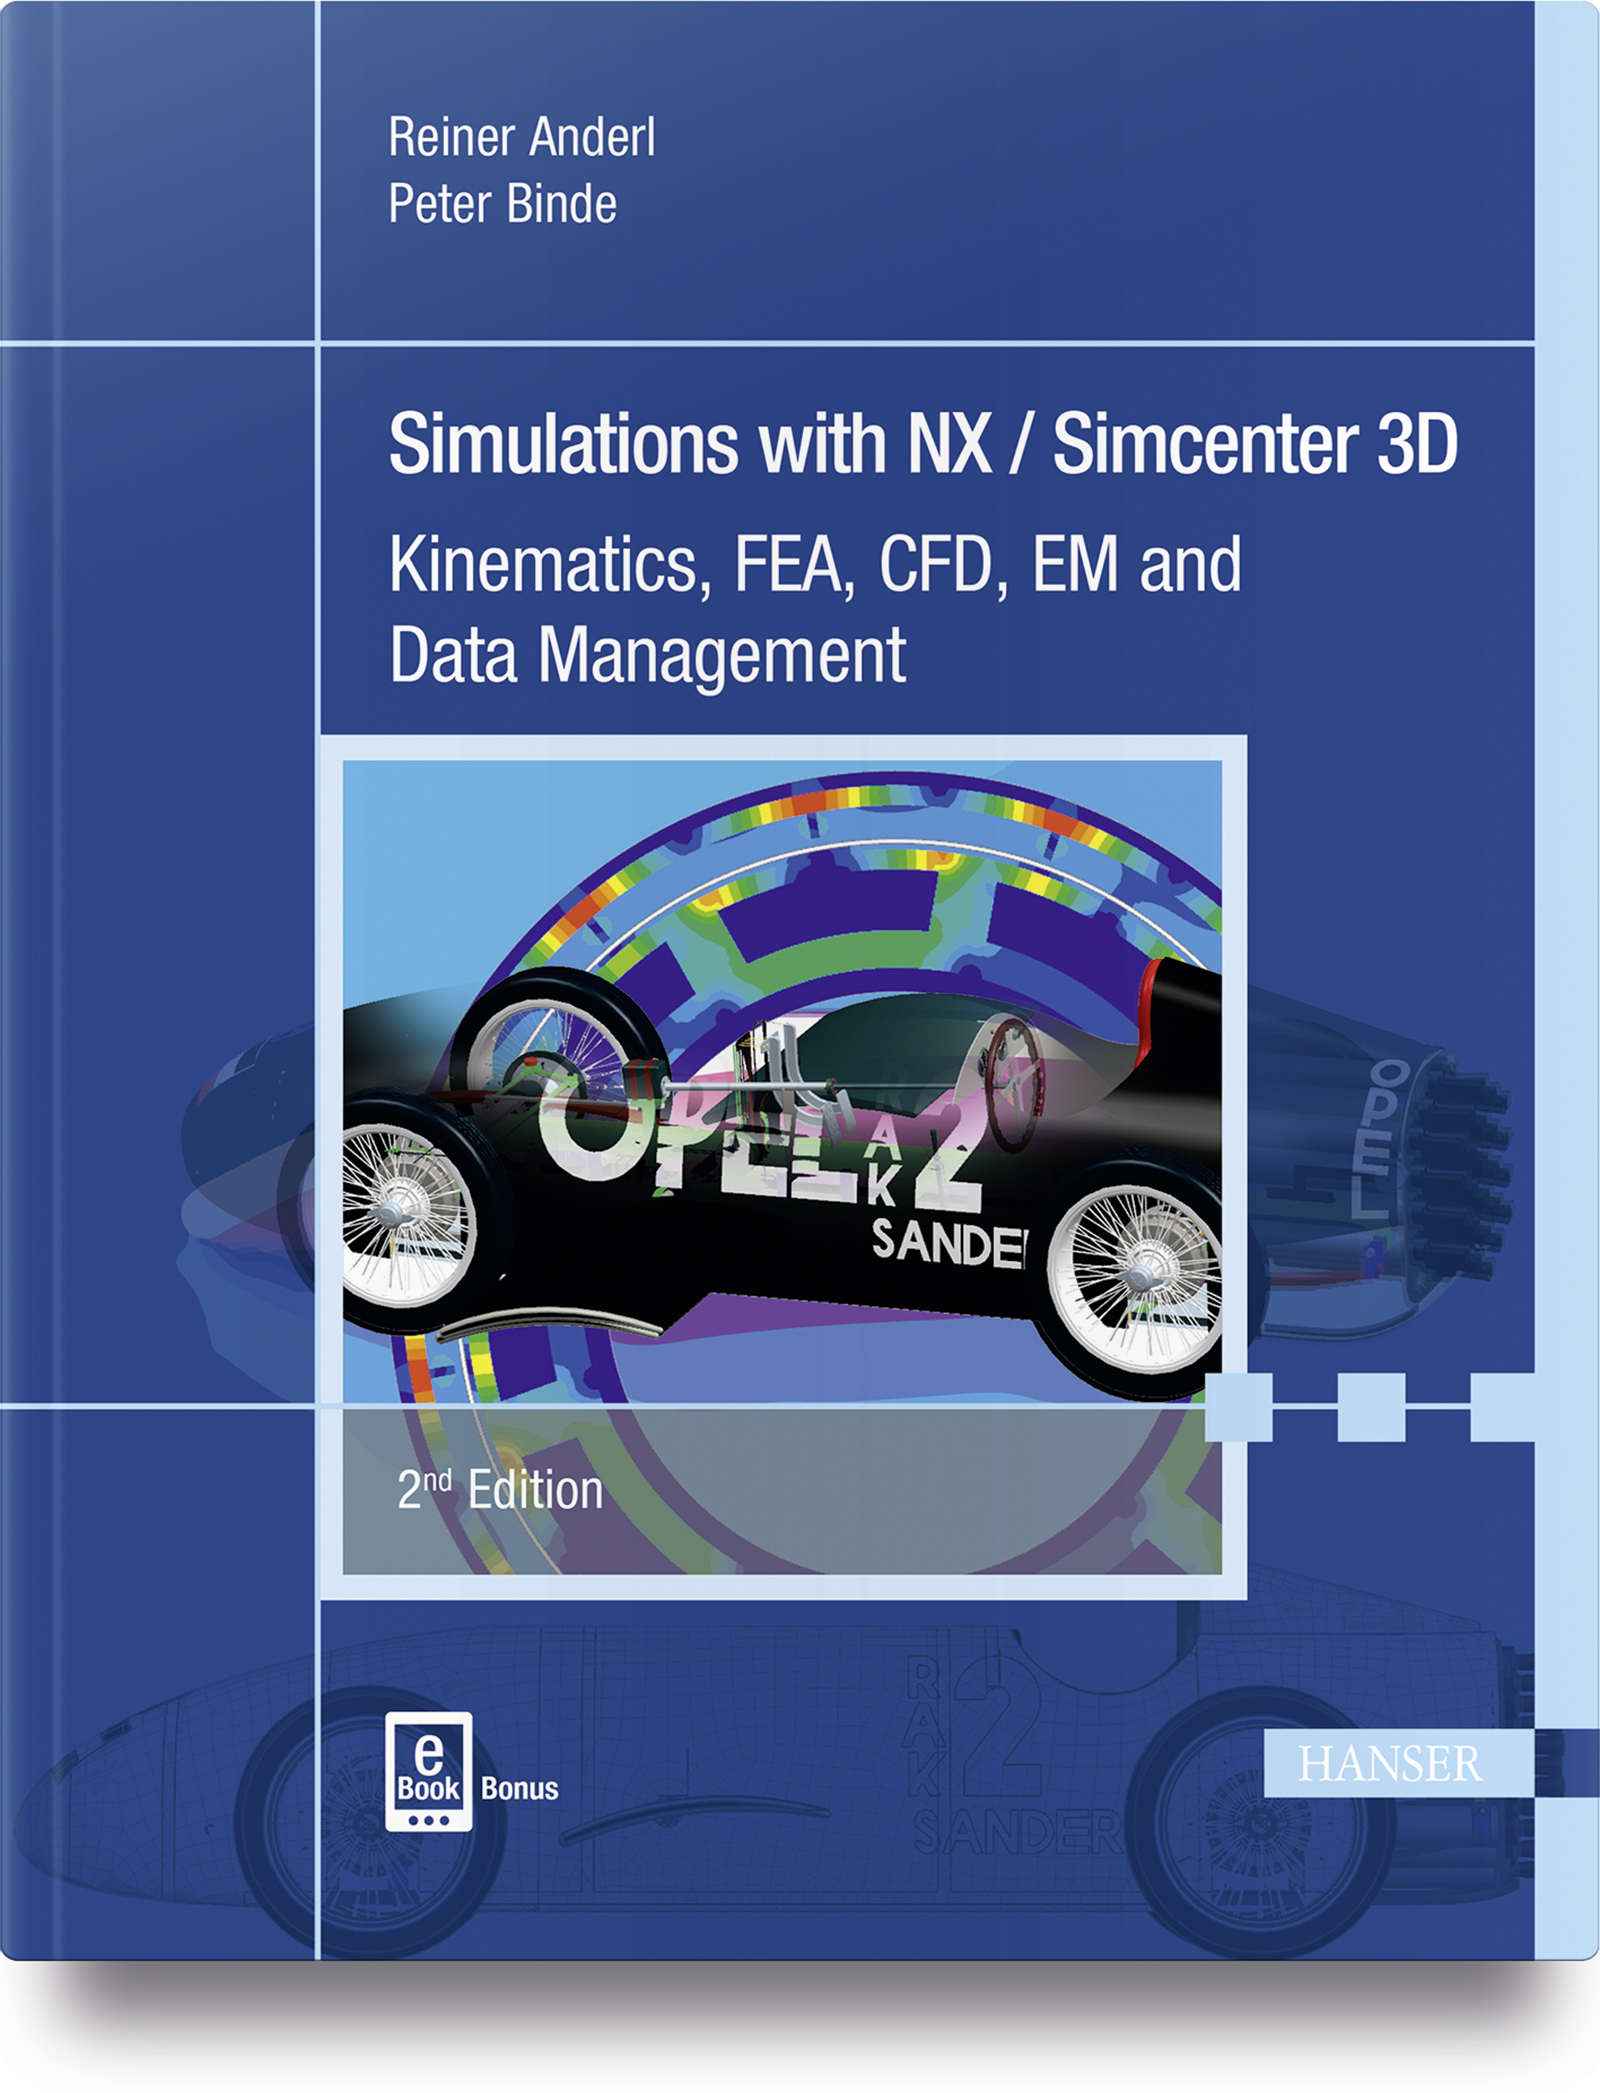 Anderl, Binde, Simulations with NX / Simcenter 3D, 978-1-56990-712-2